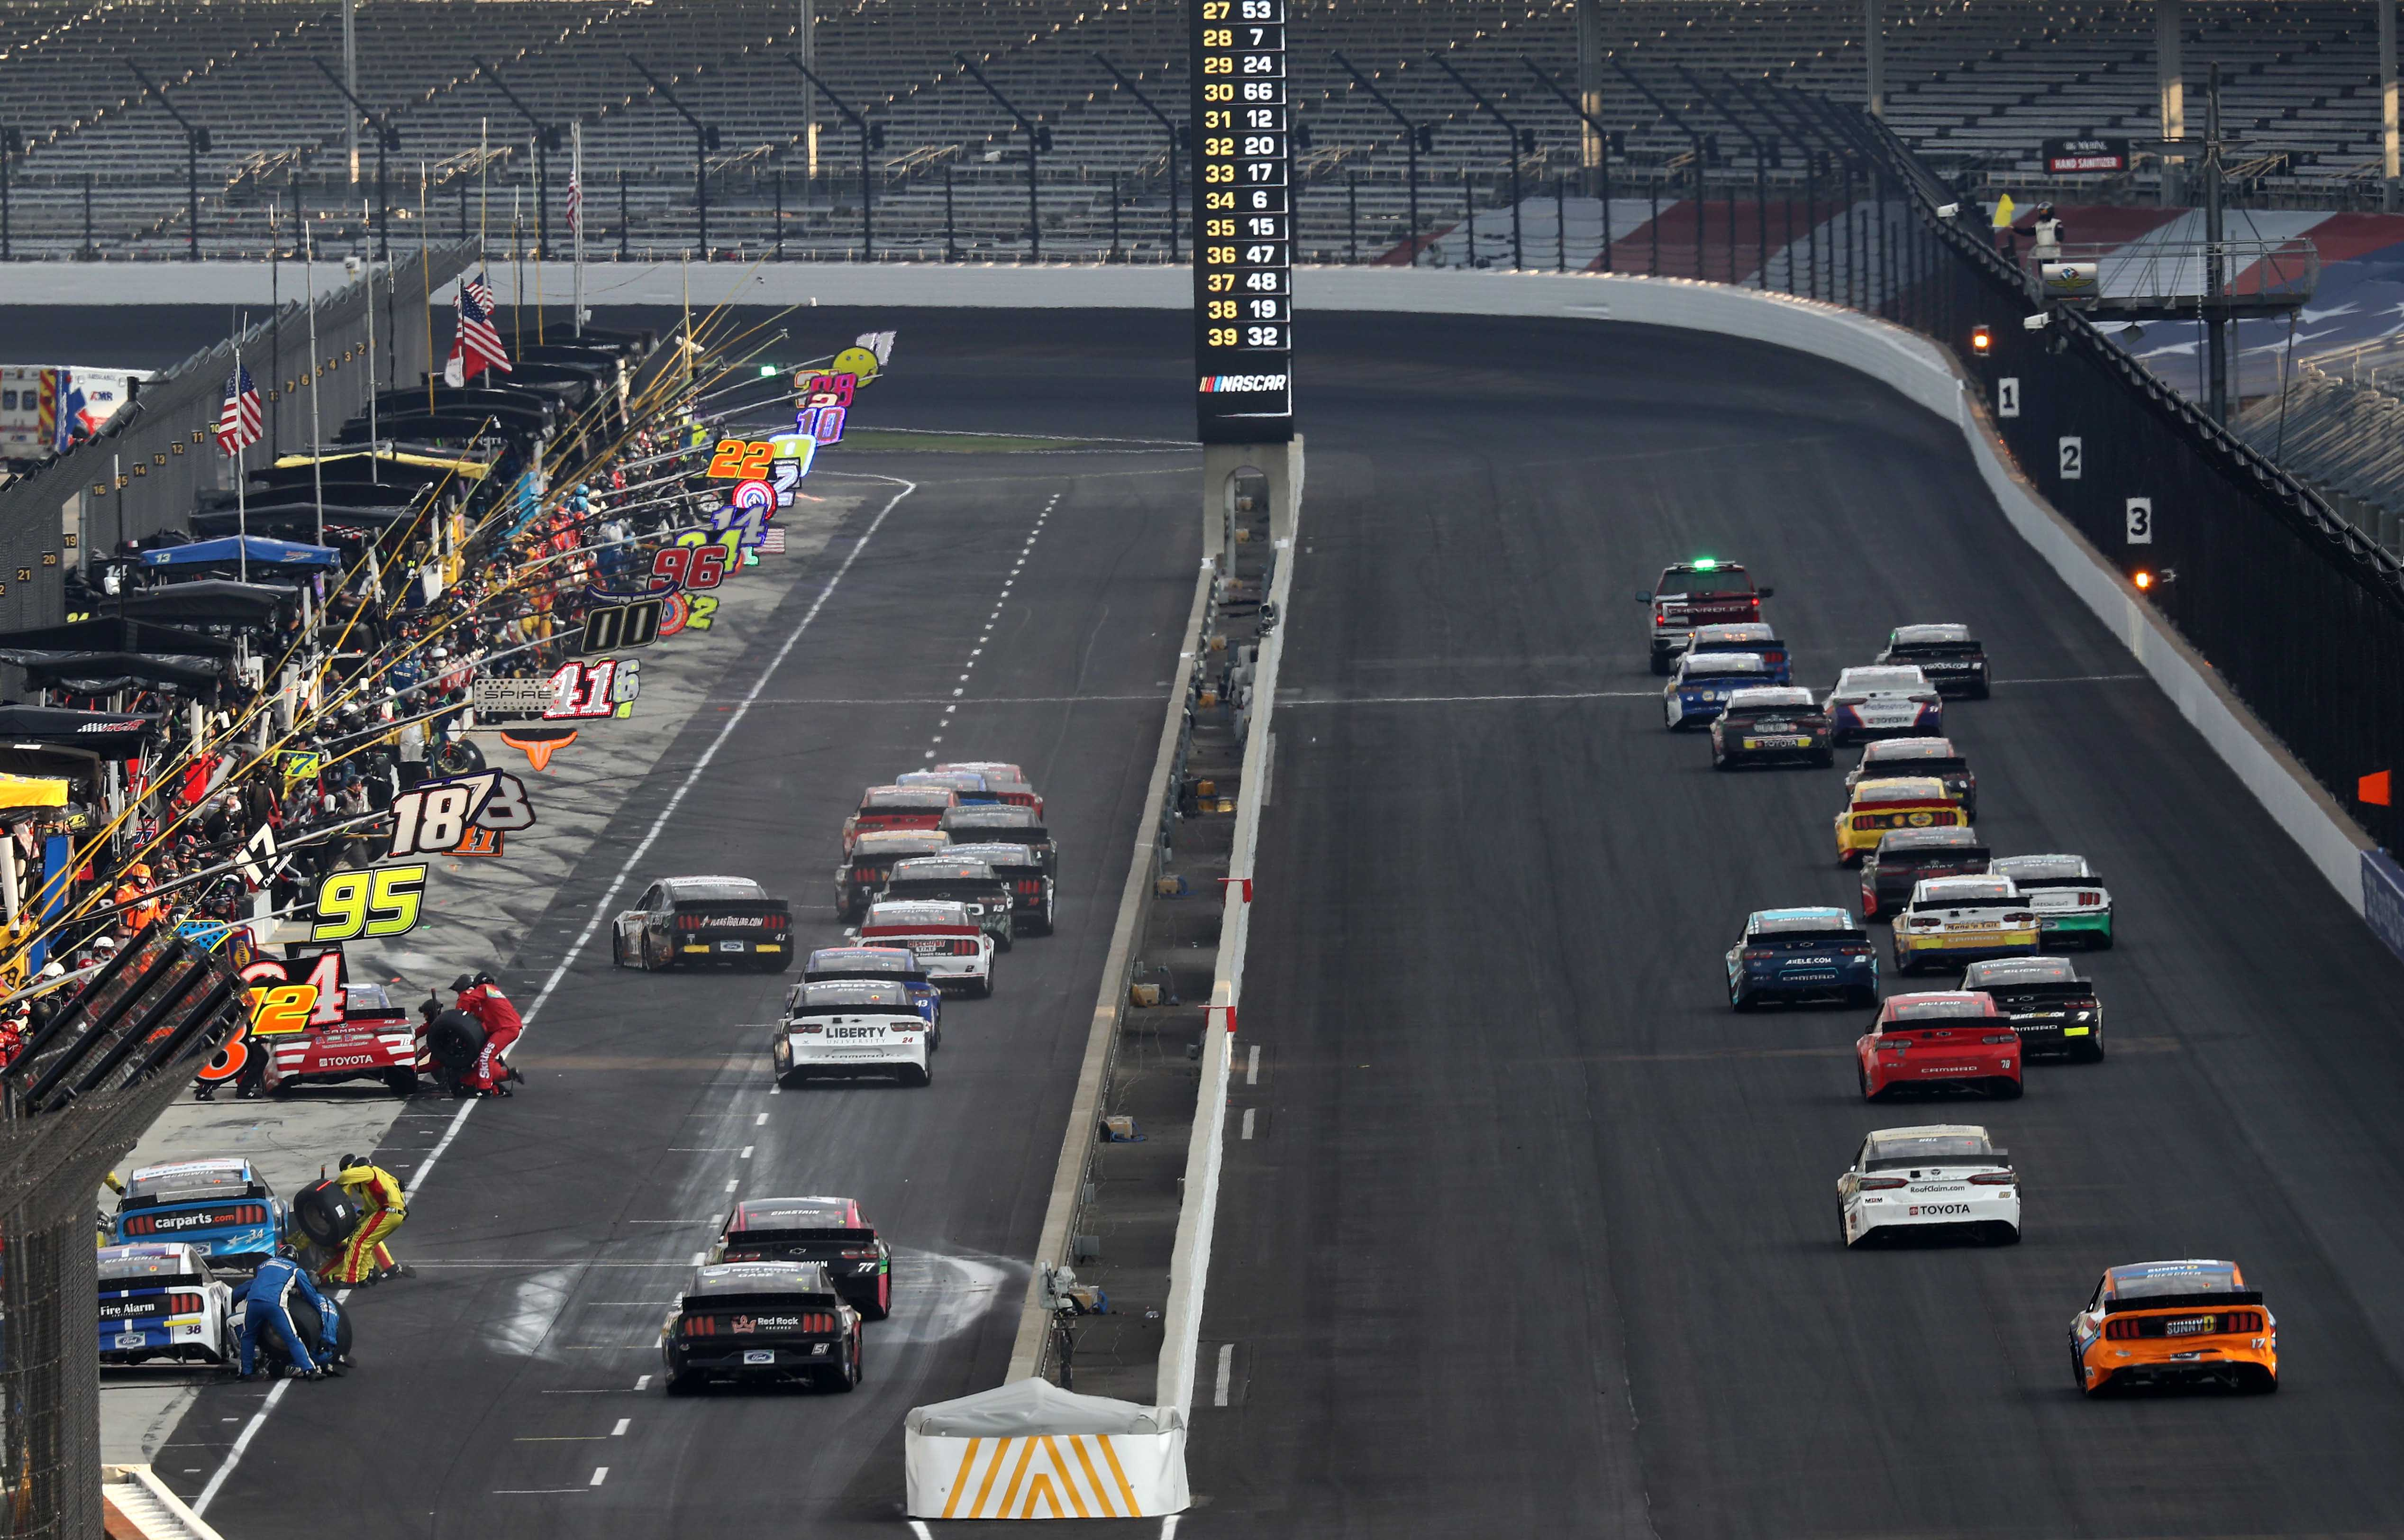 NASCAR industry was approved for roughly $45M in PPP loans - Racing News